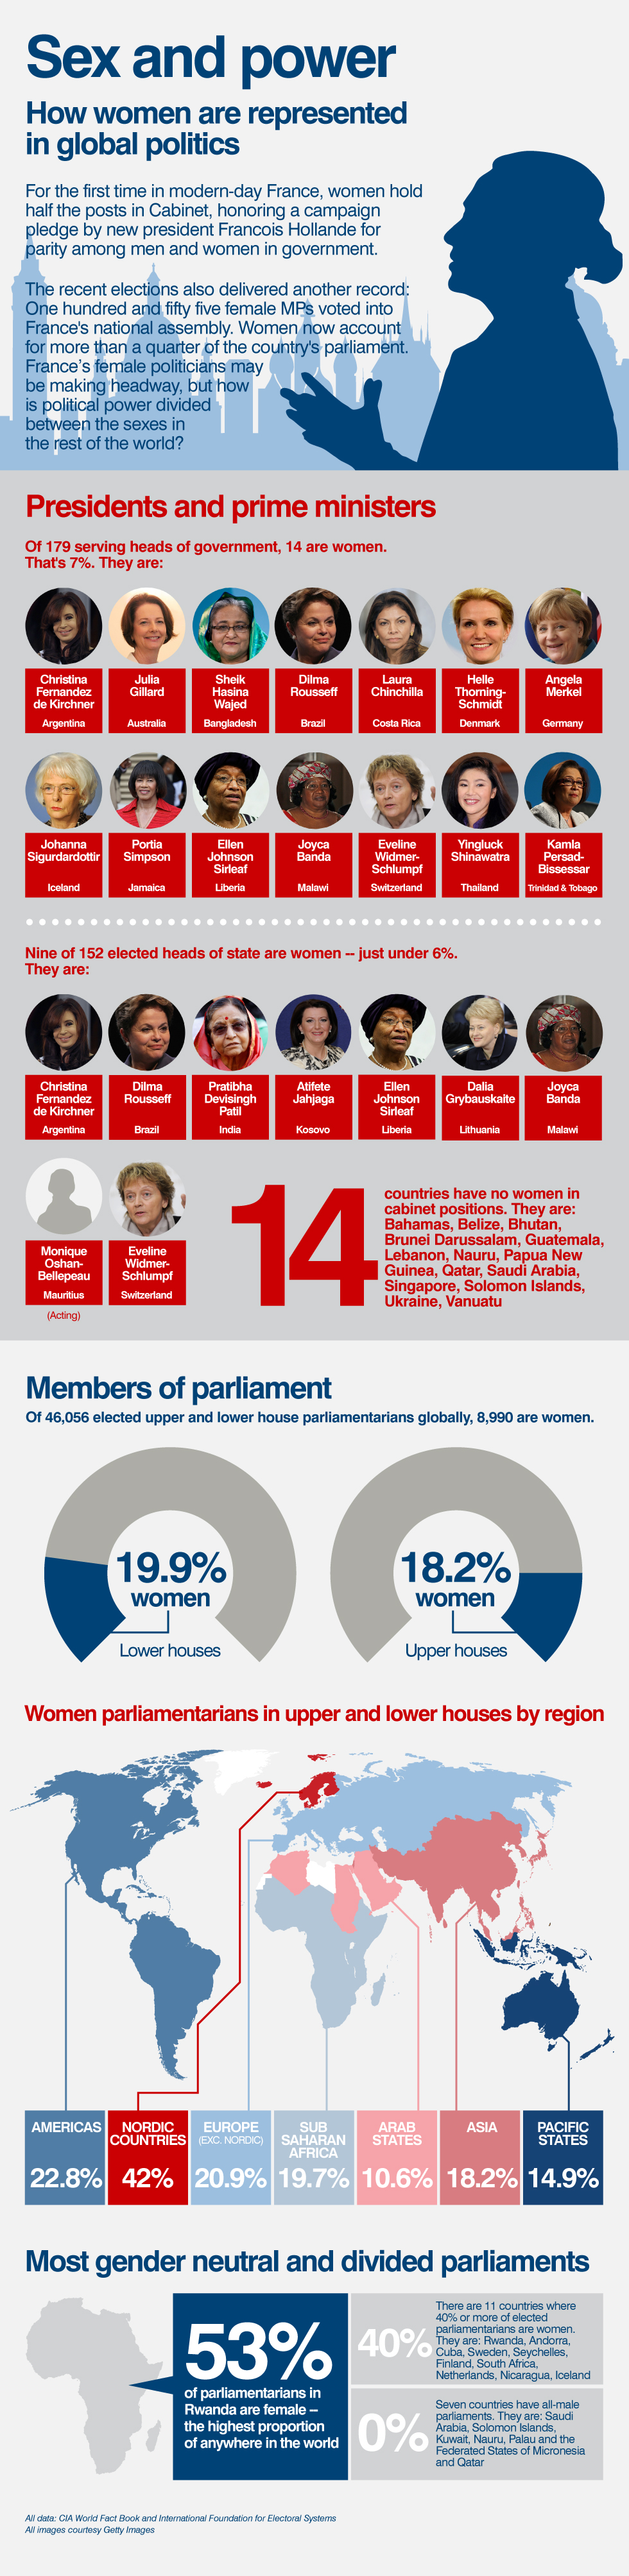 woman in political representation Women's representation in politics author: ivett kovacs originally published on: tableau public using data from the world development indicators, ivett kovacs creates a visual representation of the proportion of women in parliament around the world.